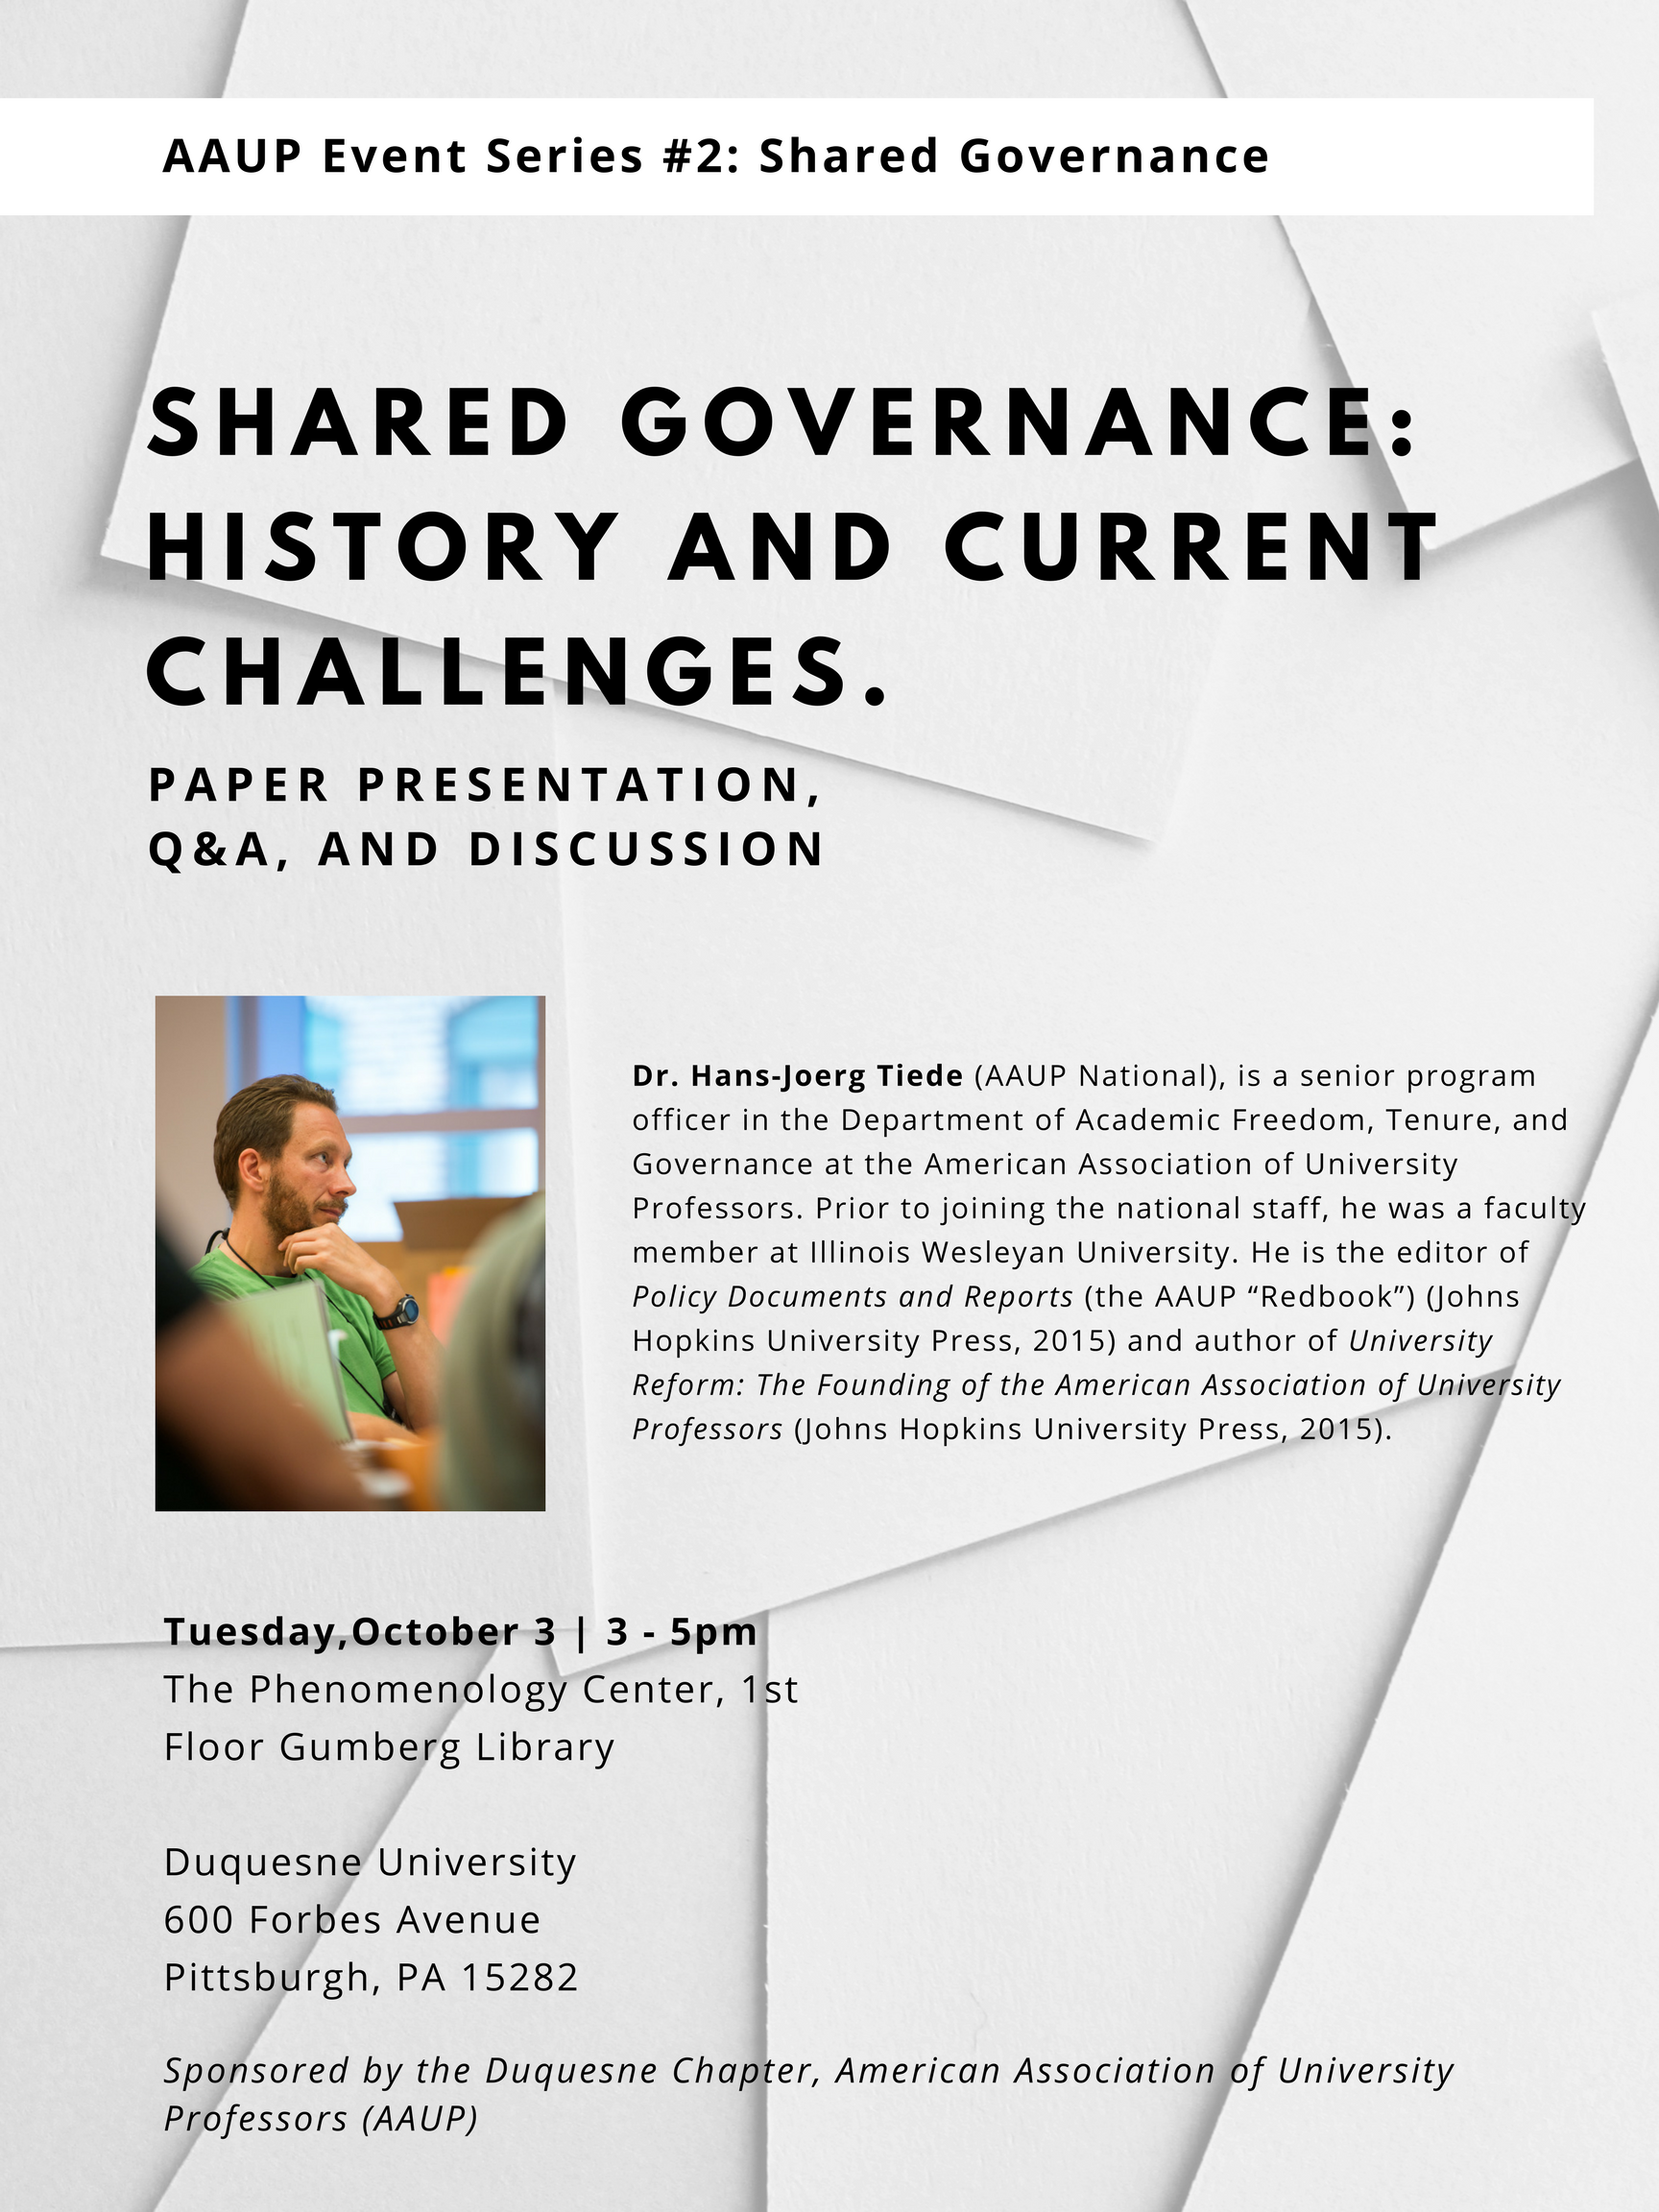 AAUP Events Series (#2): University Governance and Academic Freedom